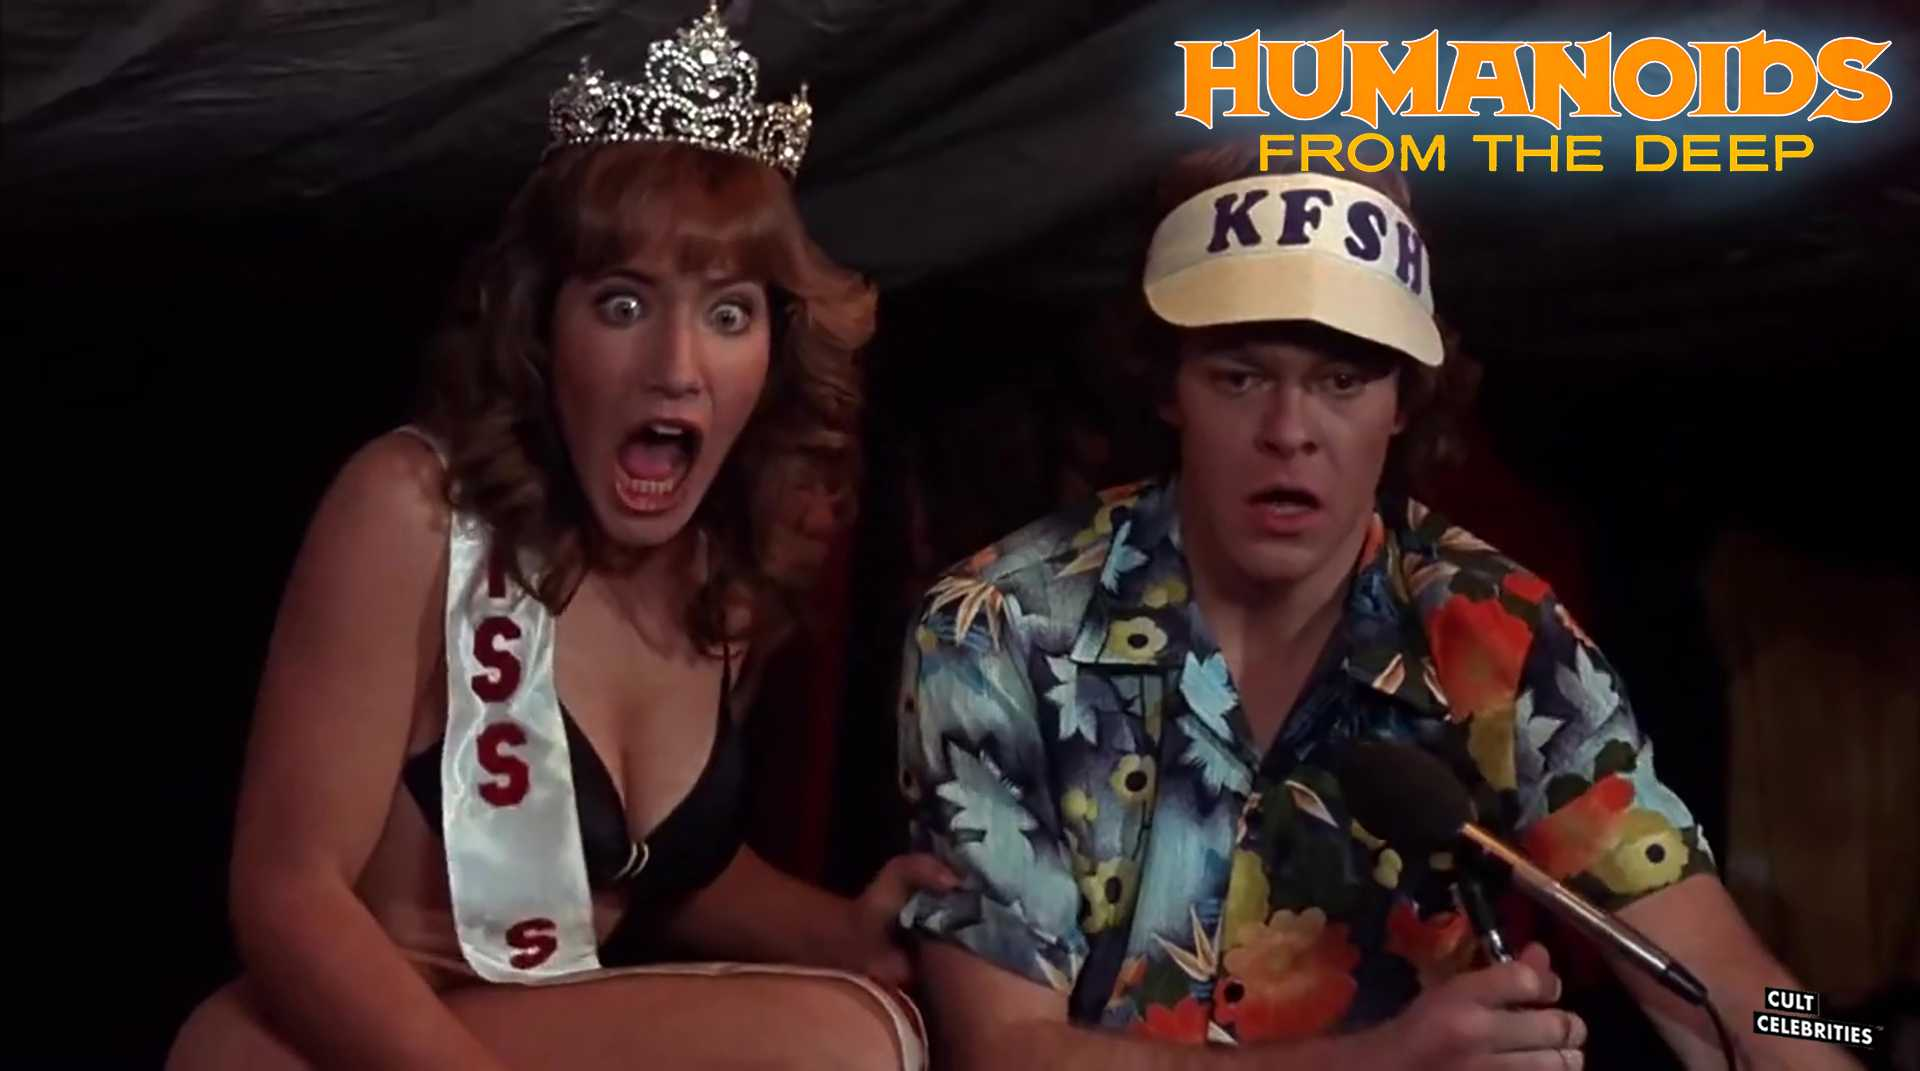 Linda Shayne in Humanoids from the Deep (1980)